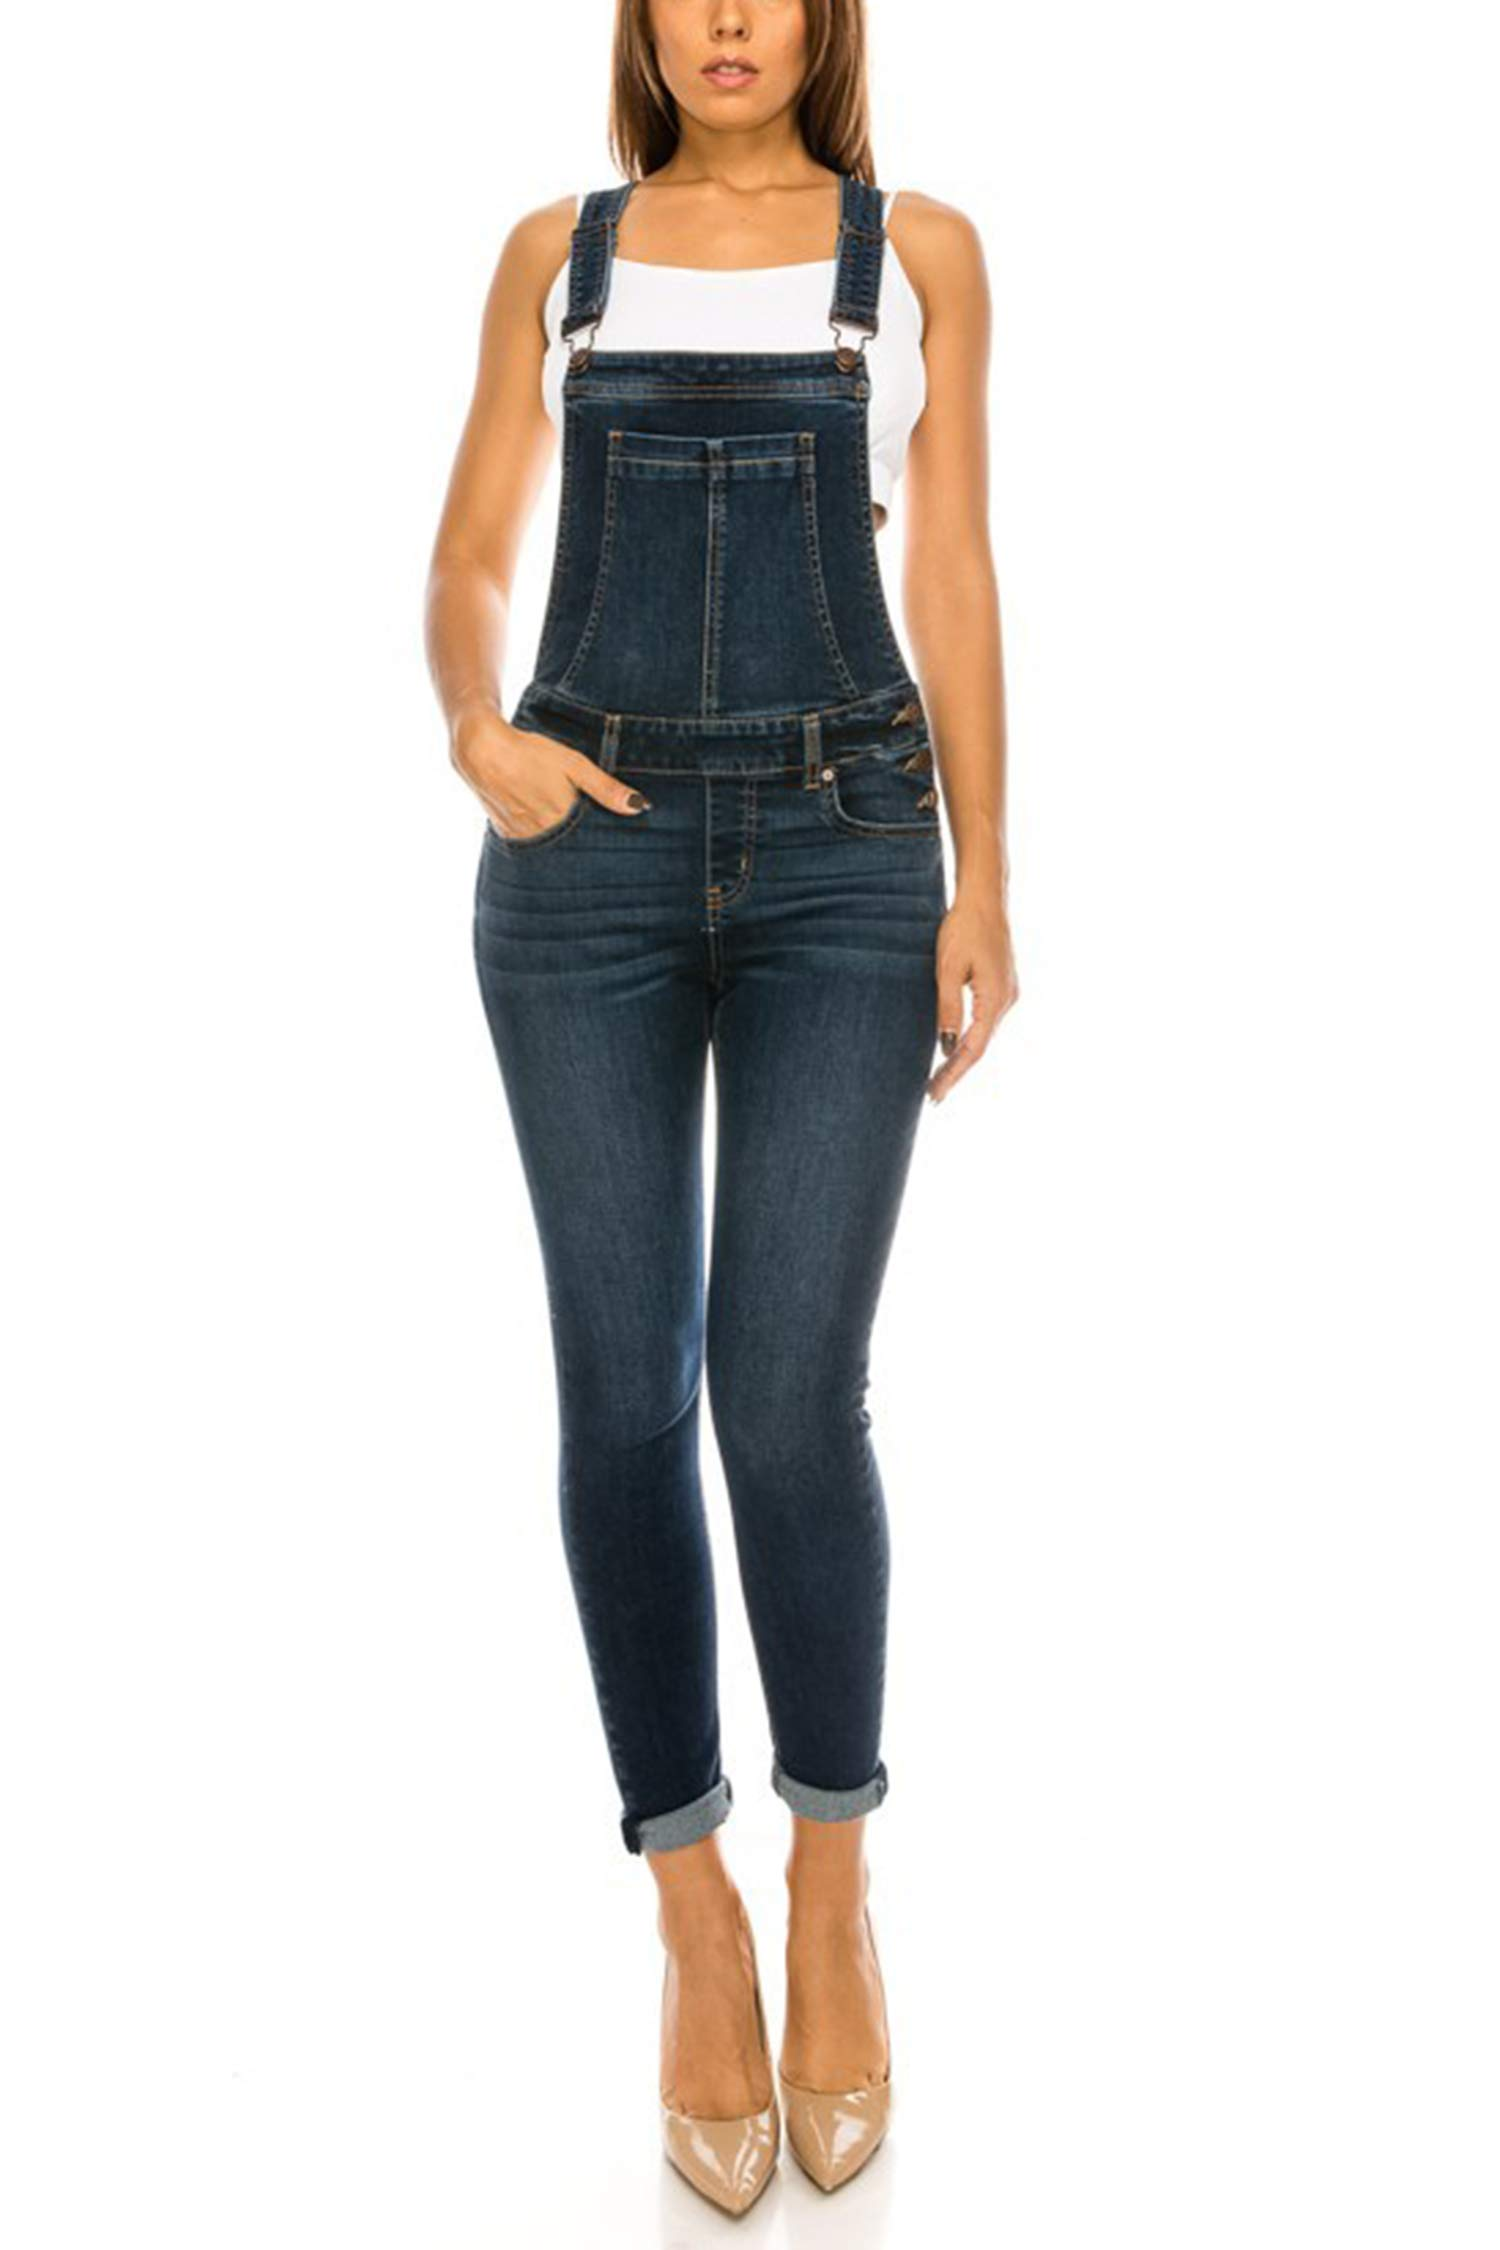 2fa3e7e8420c Vialumi Women s Juniors Fitted Denim EnJean Overalls product image